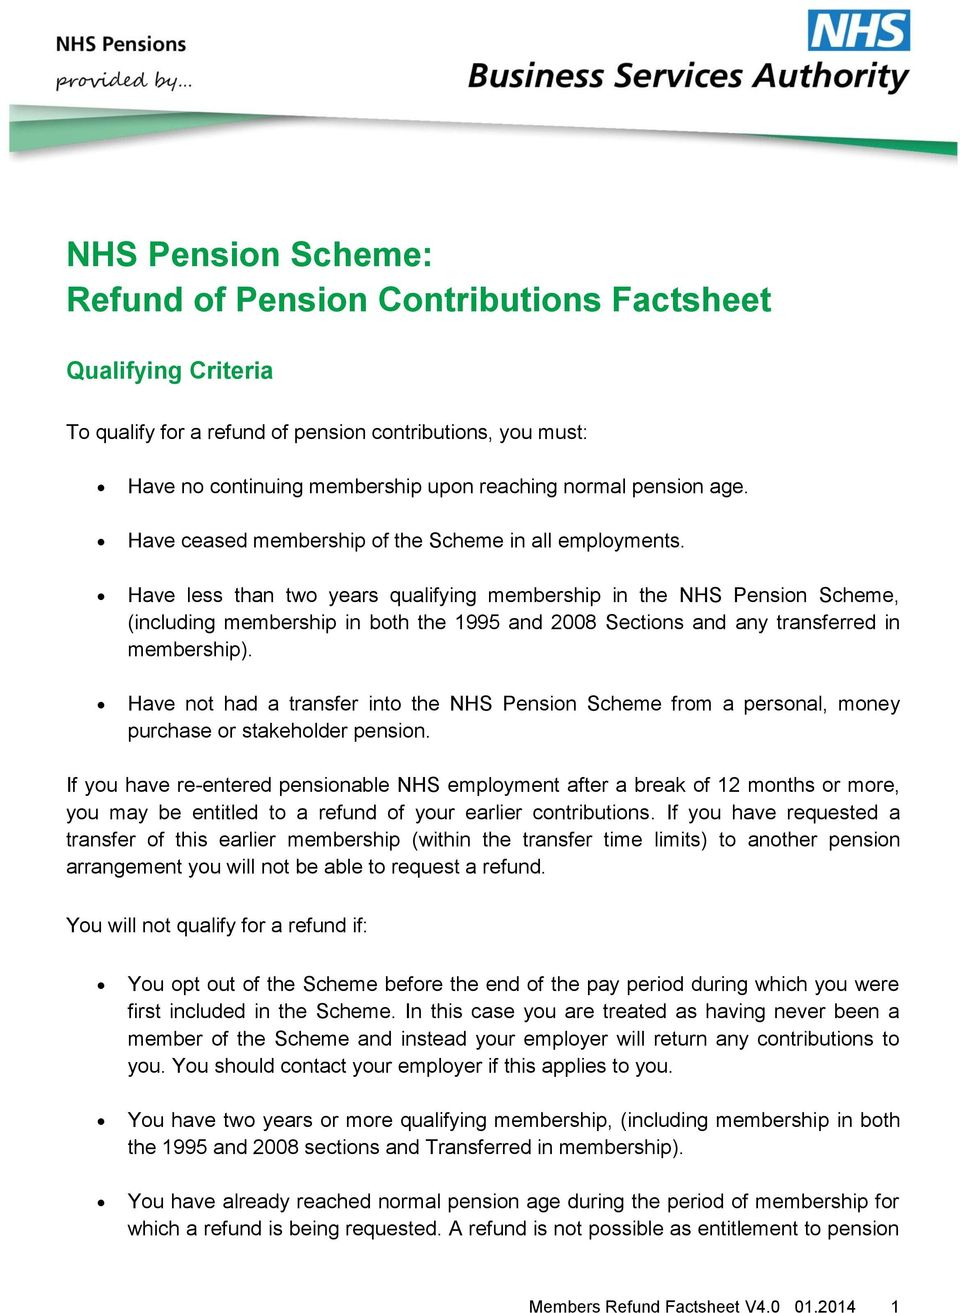 Nhs pension scheme refund of pension contributions factsheet pdf have less than two years qualifying membership in the nhs pension scheme including membership spiritdancerdesigns Gallery